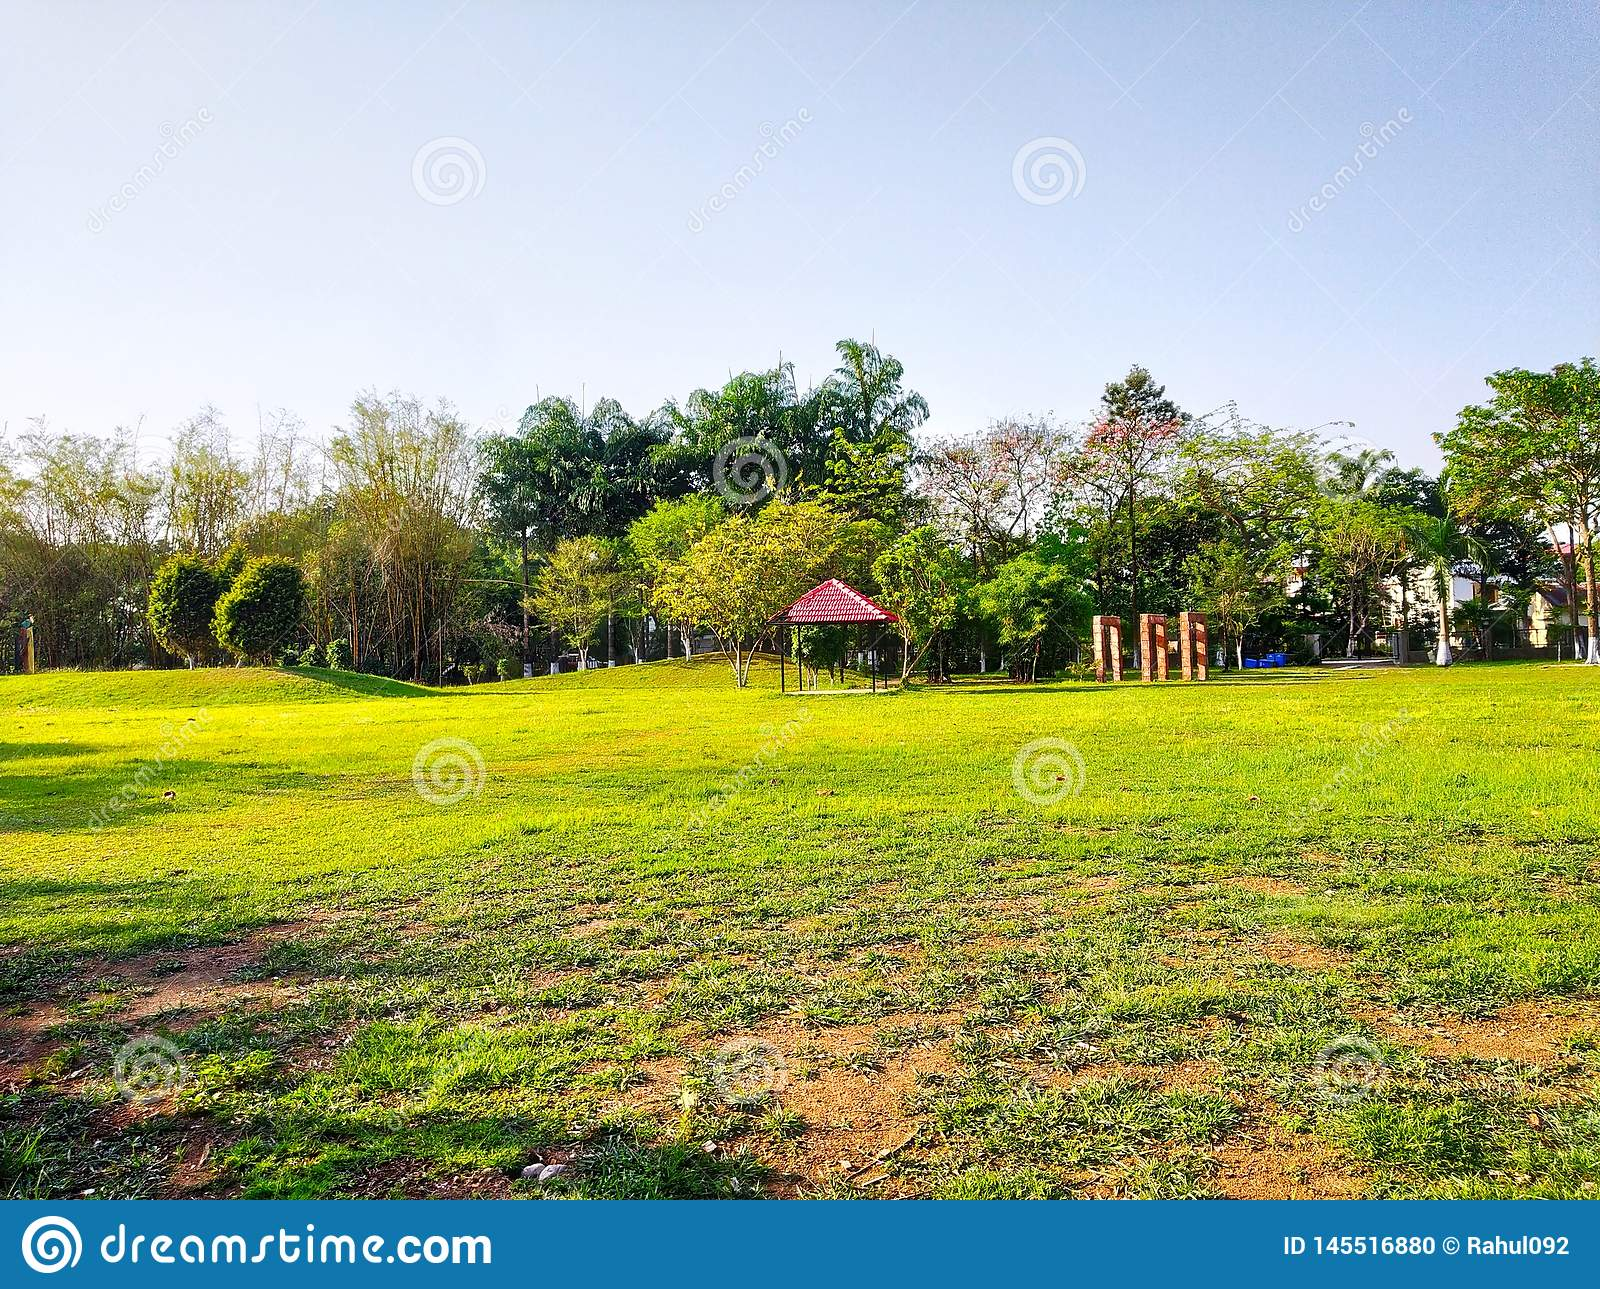 Beautiful garden and over full green grass and back and ausome blue sky background seen was magical